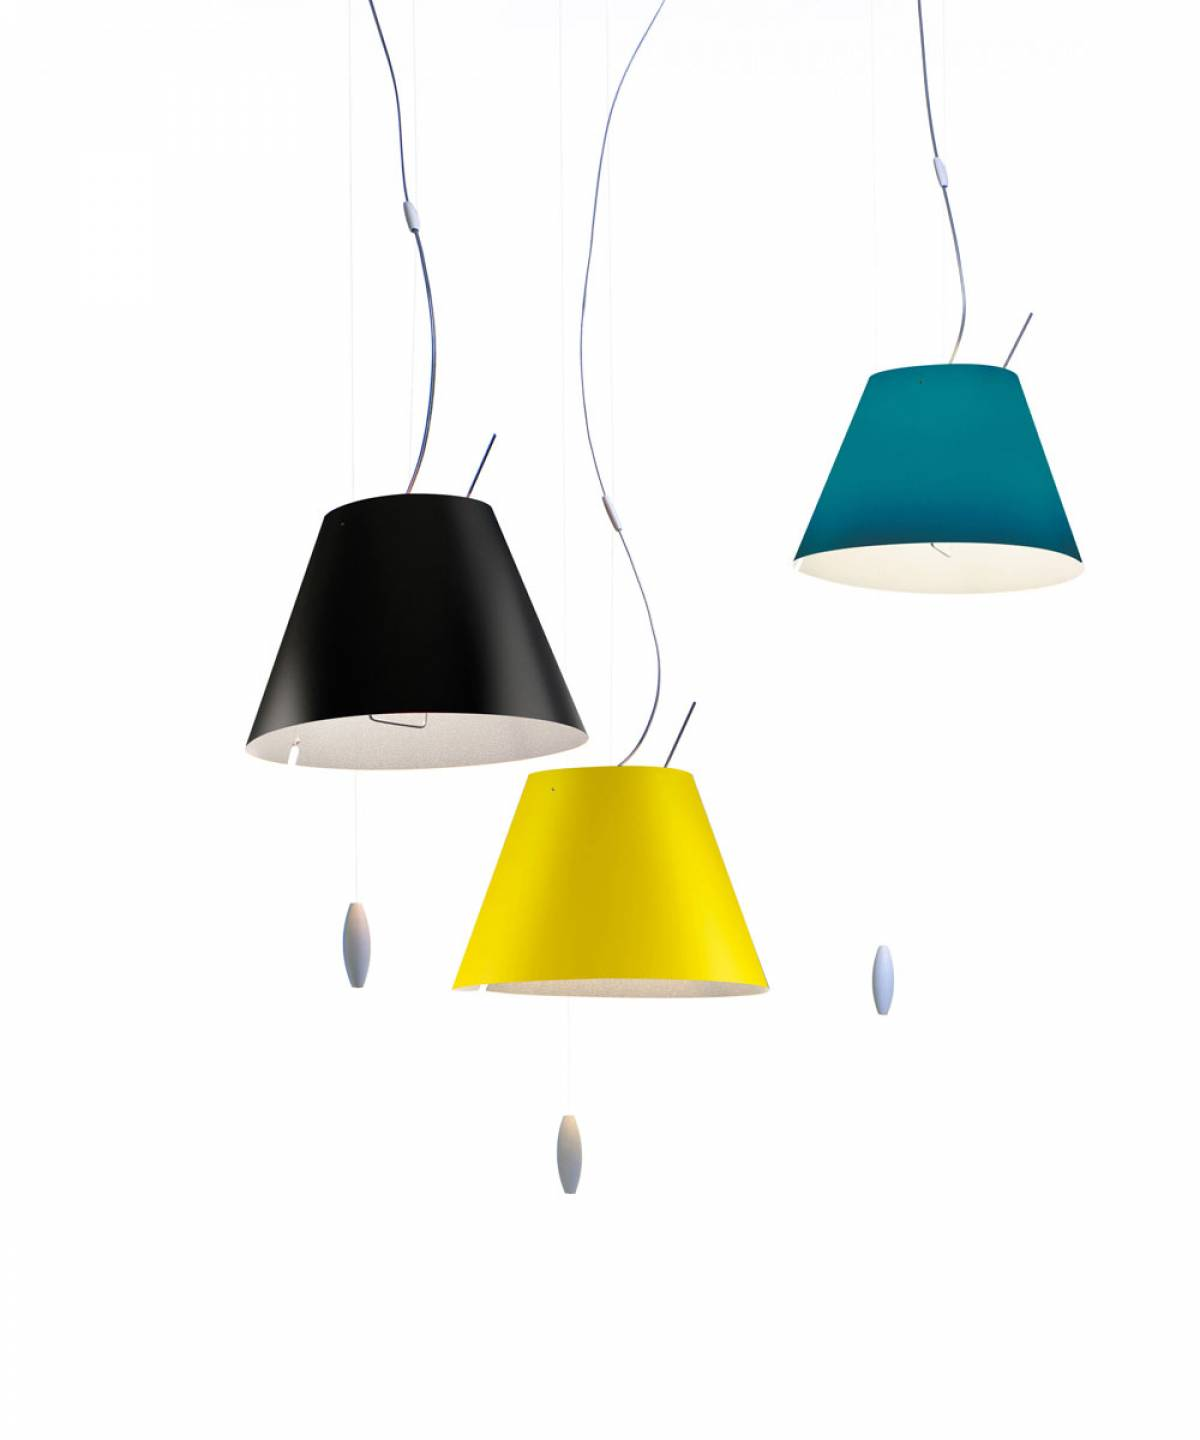 1 Costanzina suspension lamp Luceplan